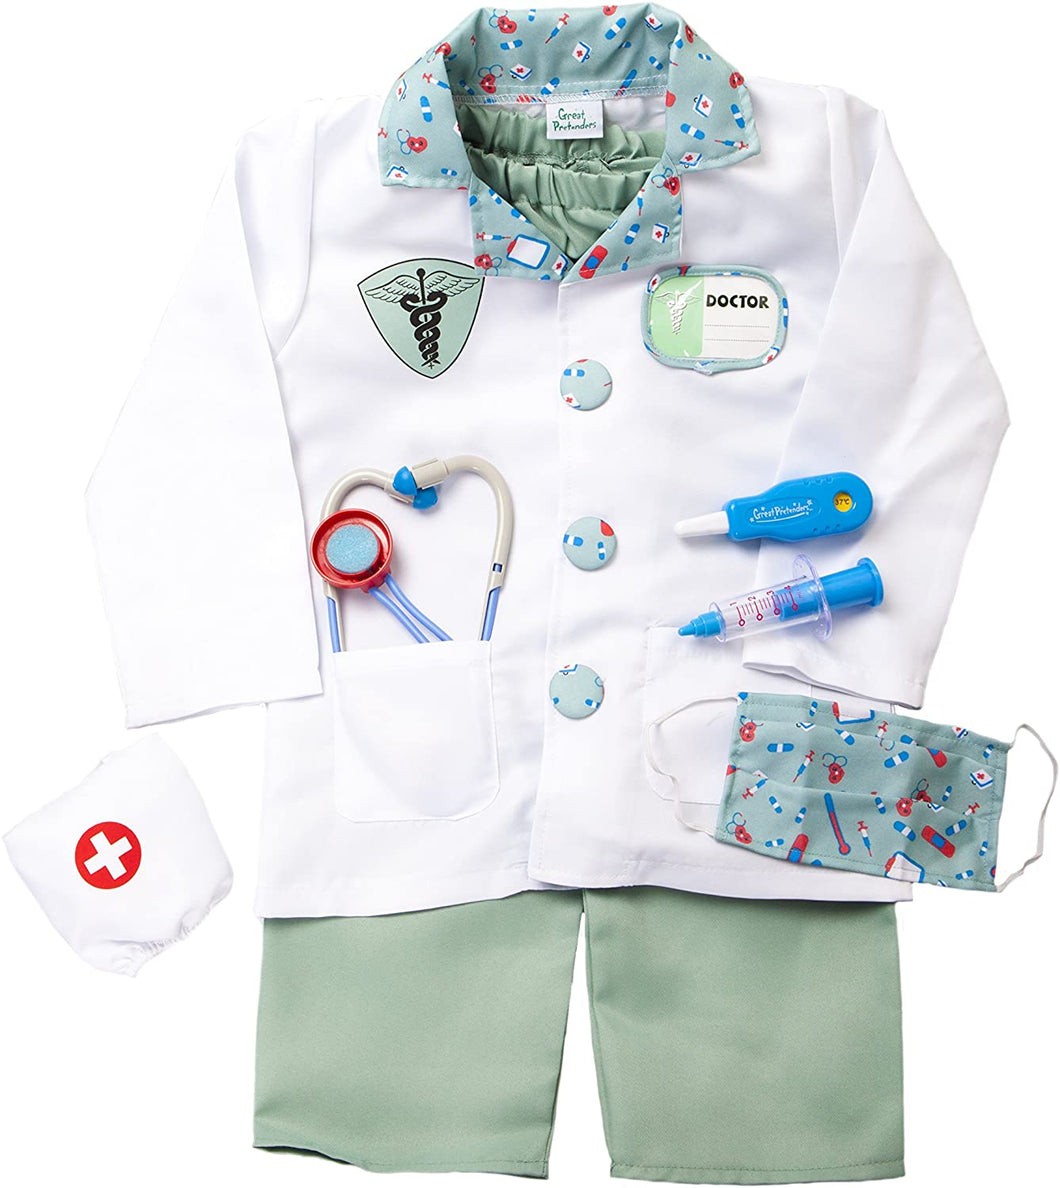 Great Pretenders Green Doctor with Accessories in Garment Bag, Size 5-6 Dress-Up Play